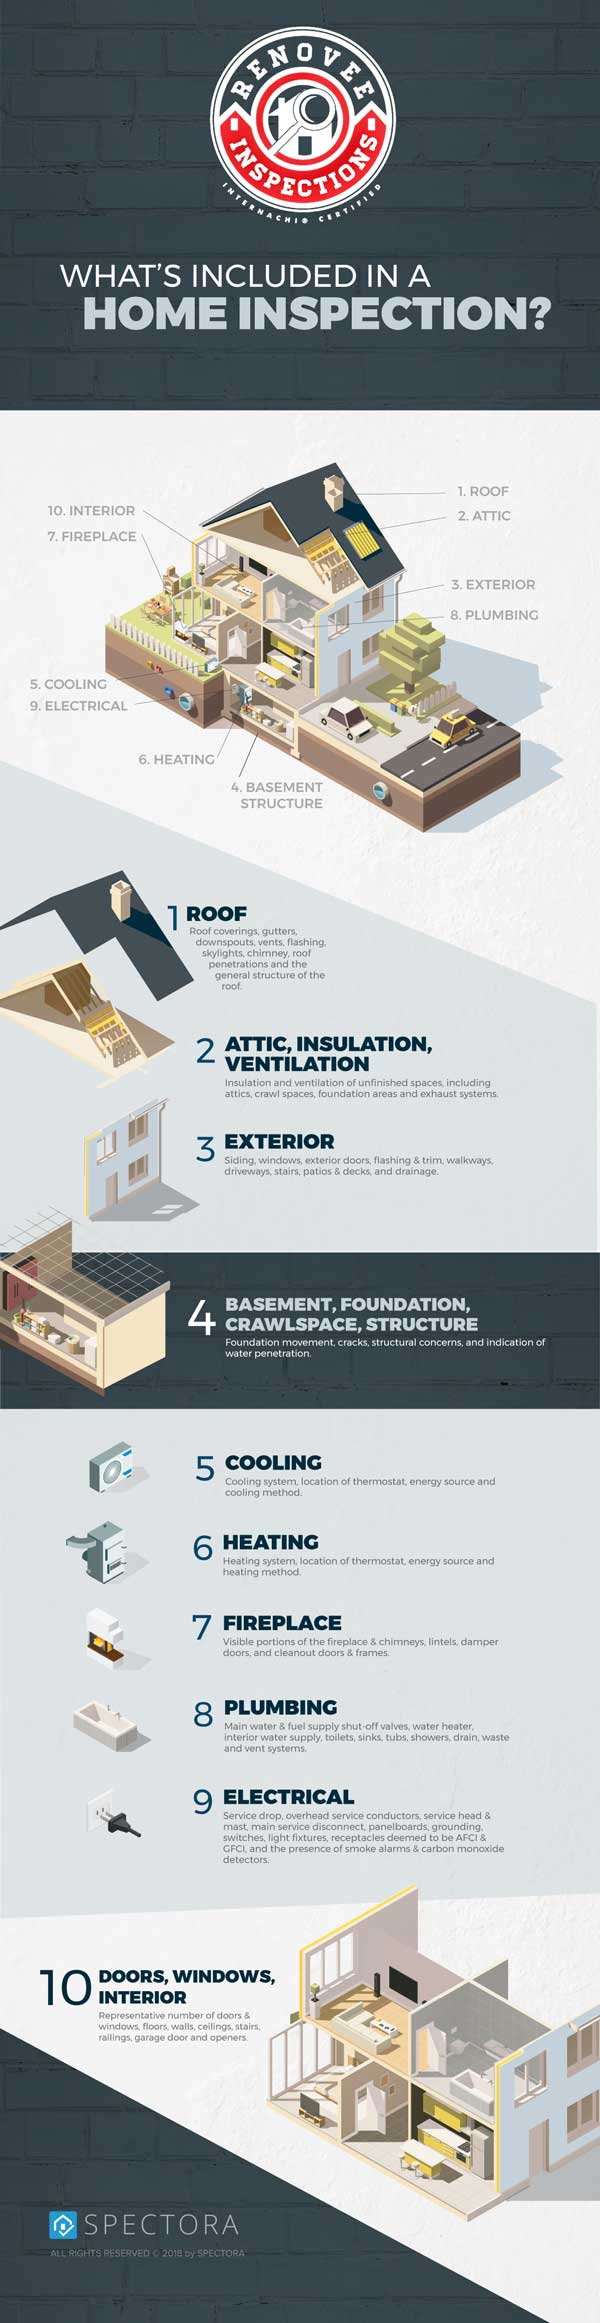 renovee home inspection infographic